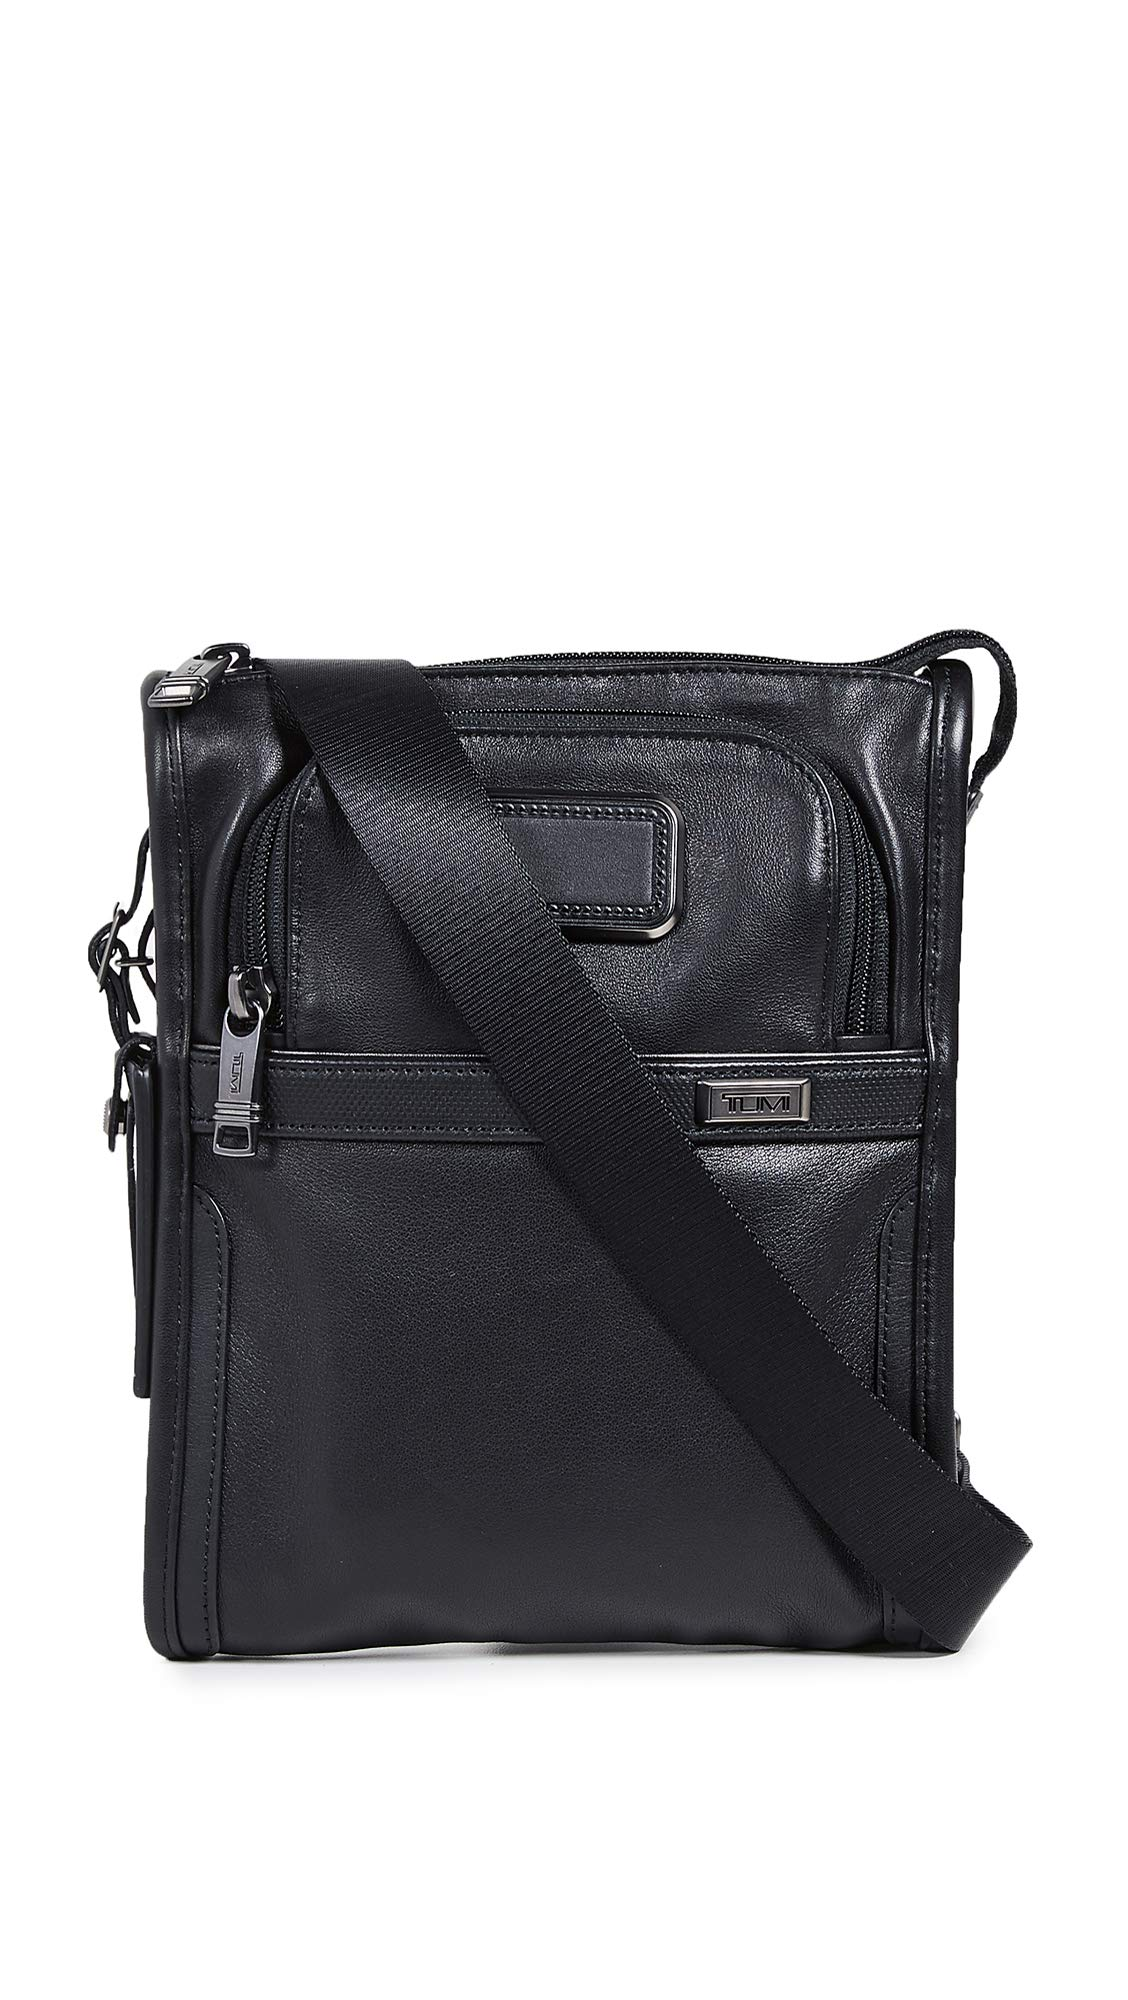 Tumi Men's Alpha Small Pocket Bag, Black, One Size